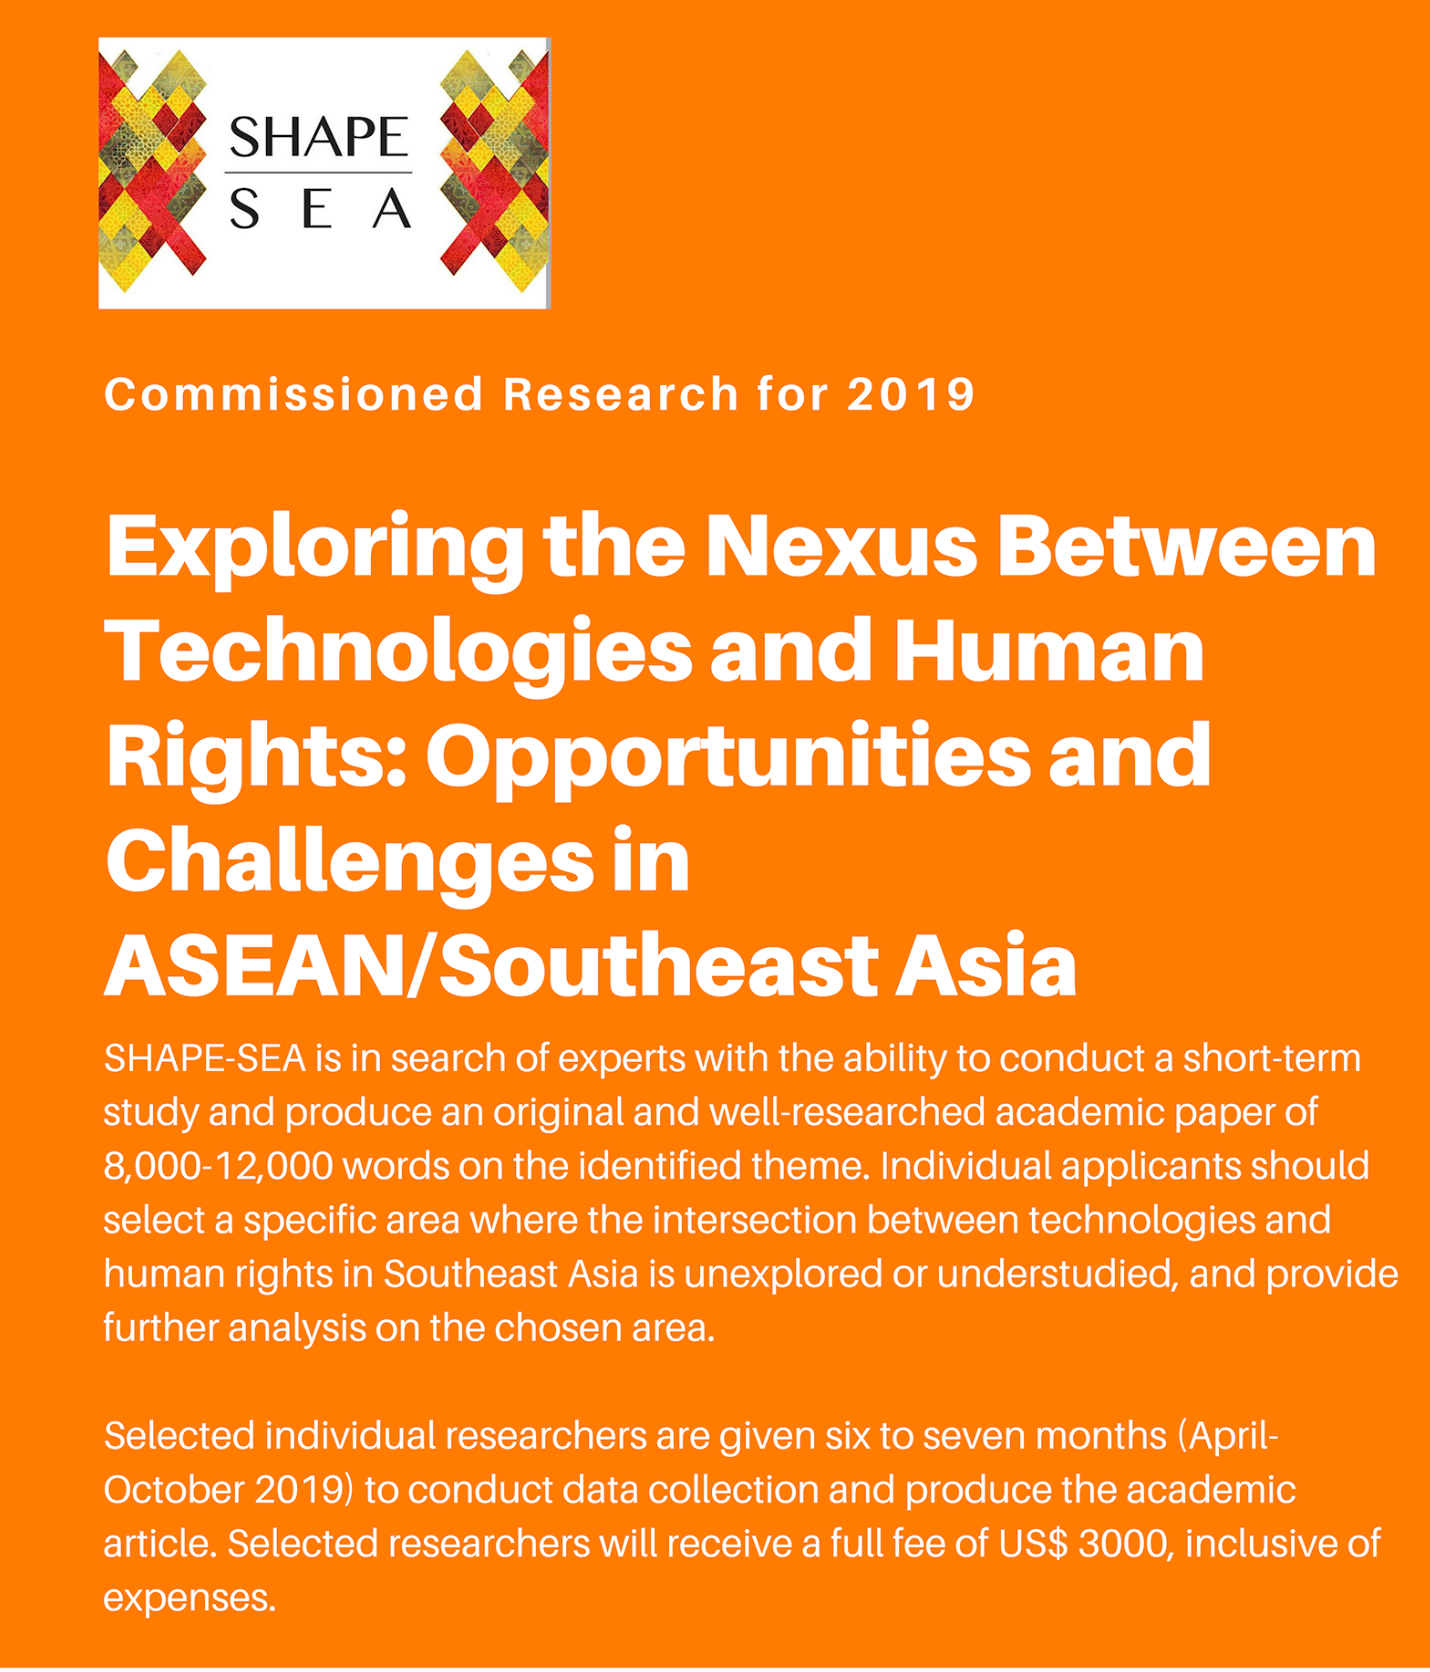 SHAPE-SEA Strengthening Human Rights & Peace Research